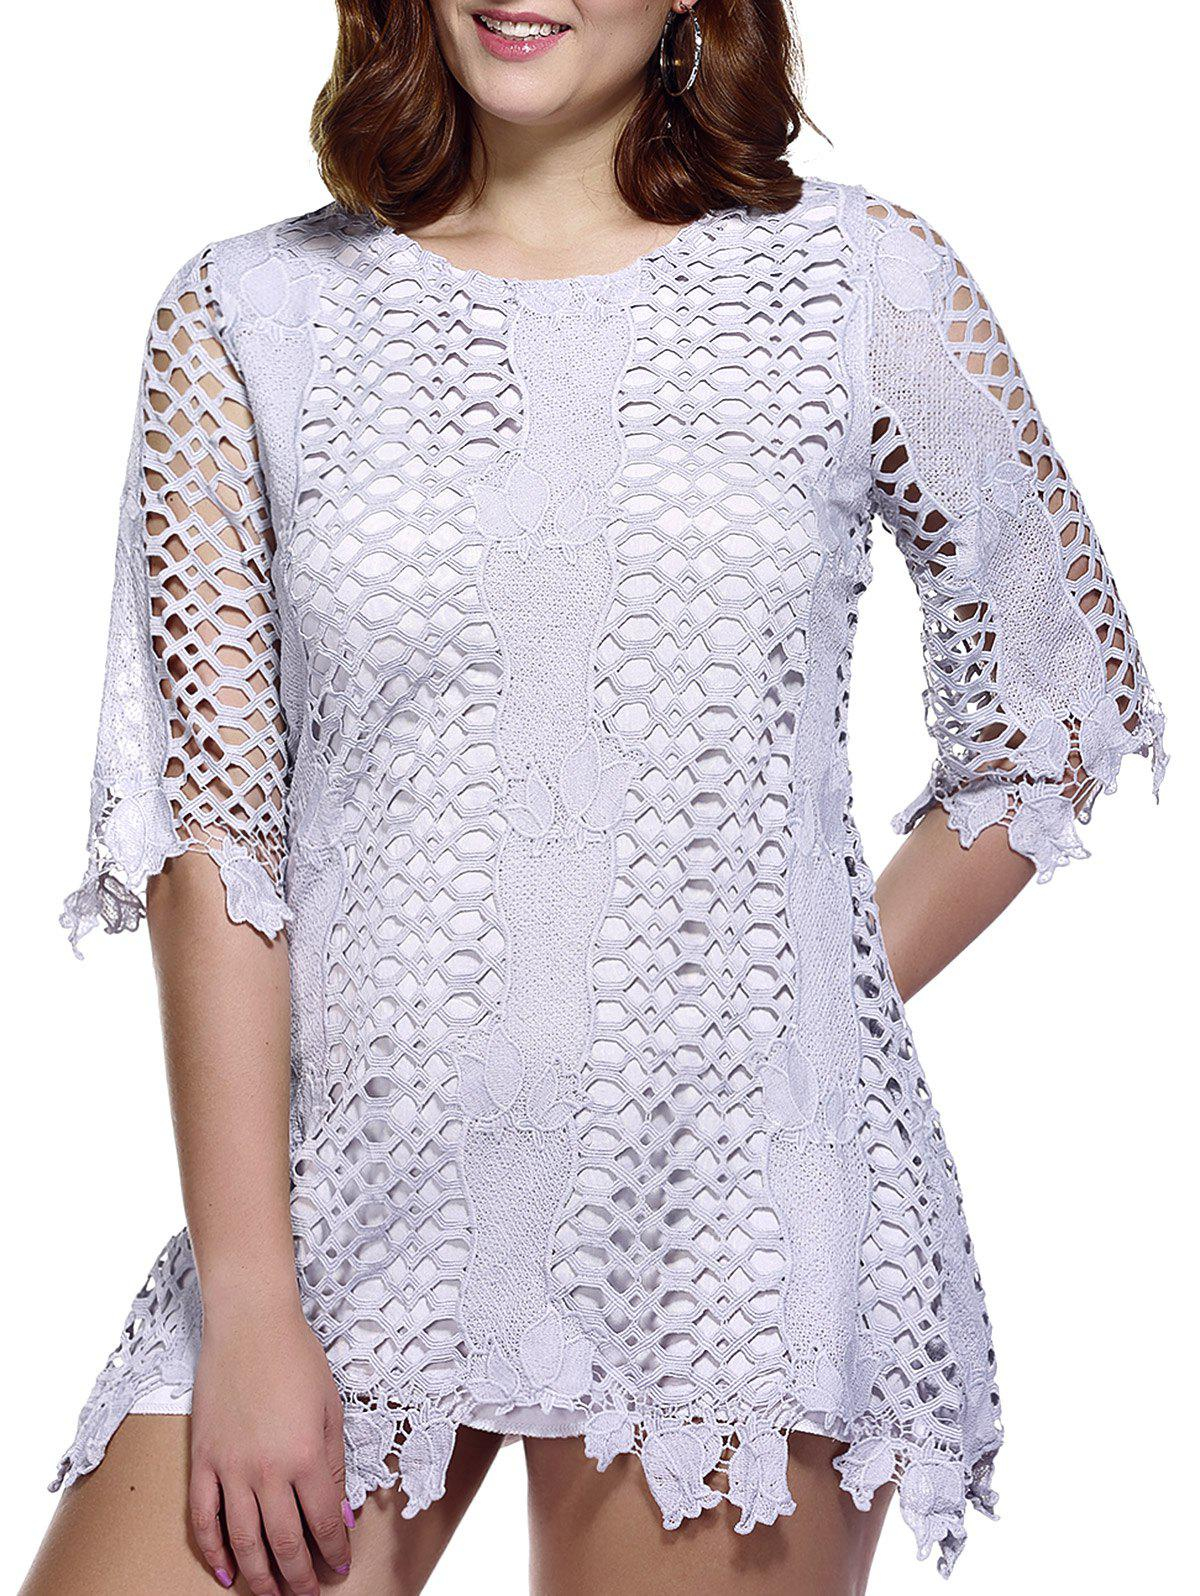 Stylish Women's Plus Size Hollow Out Lace Overlay Dress